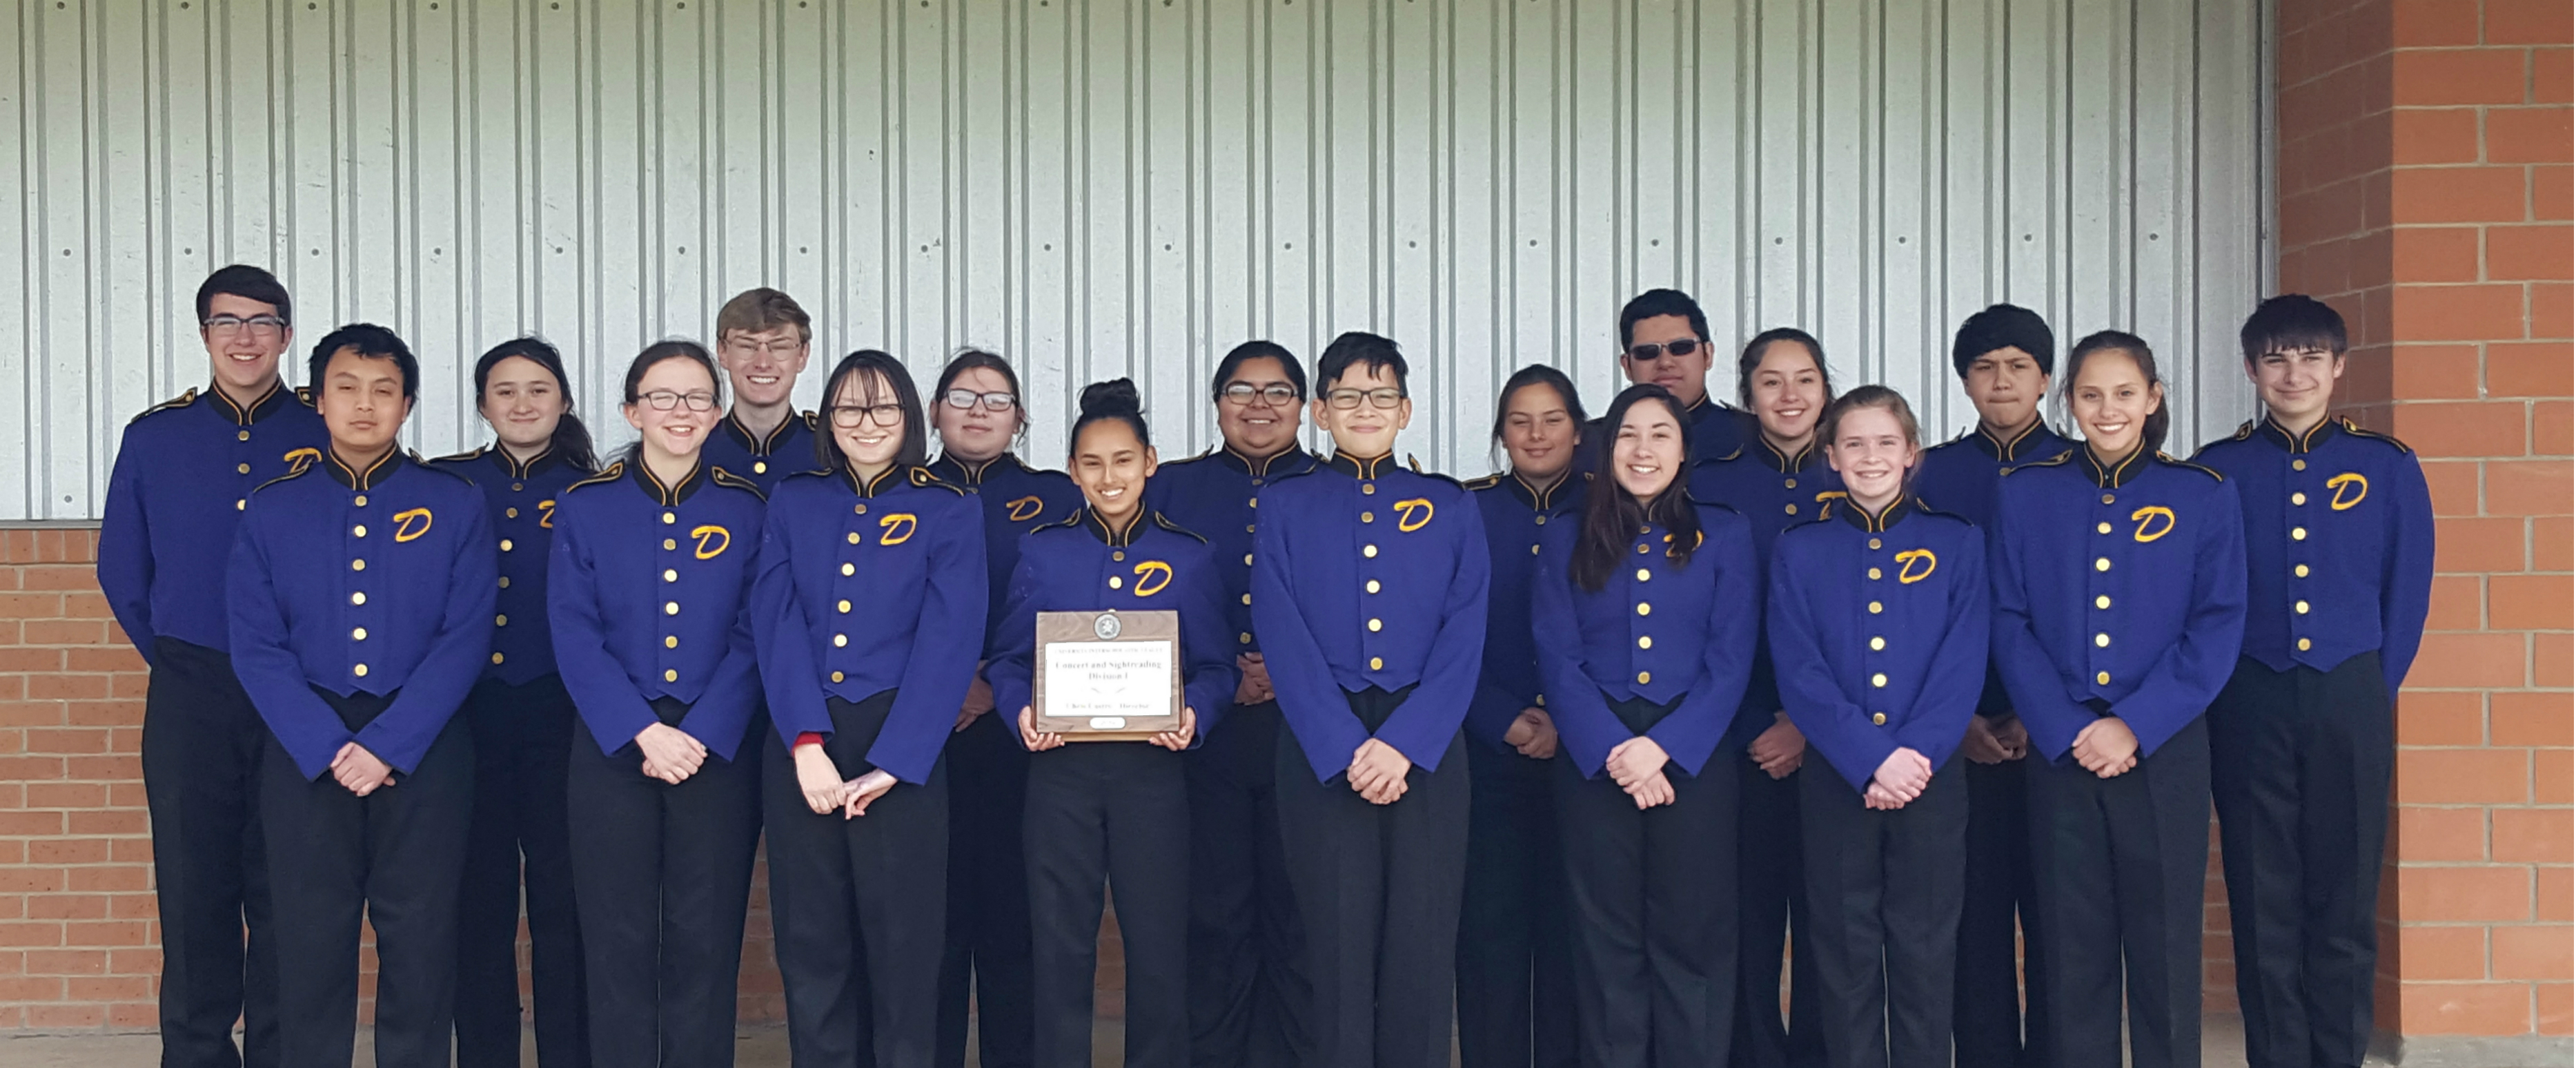 D'Hanis Pride Band Receives Division 1